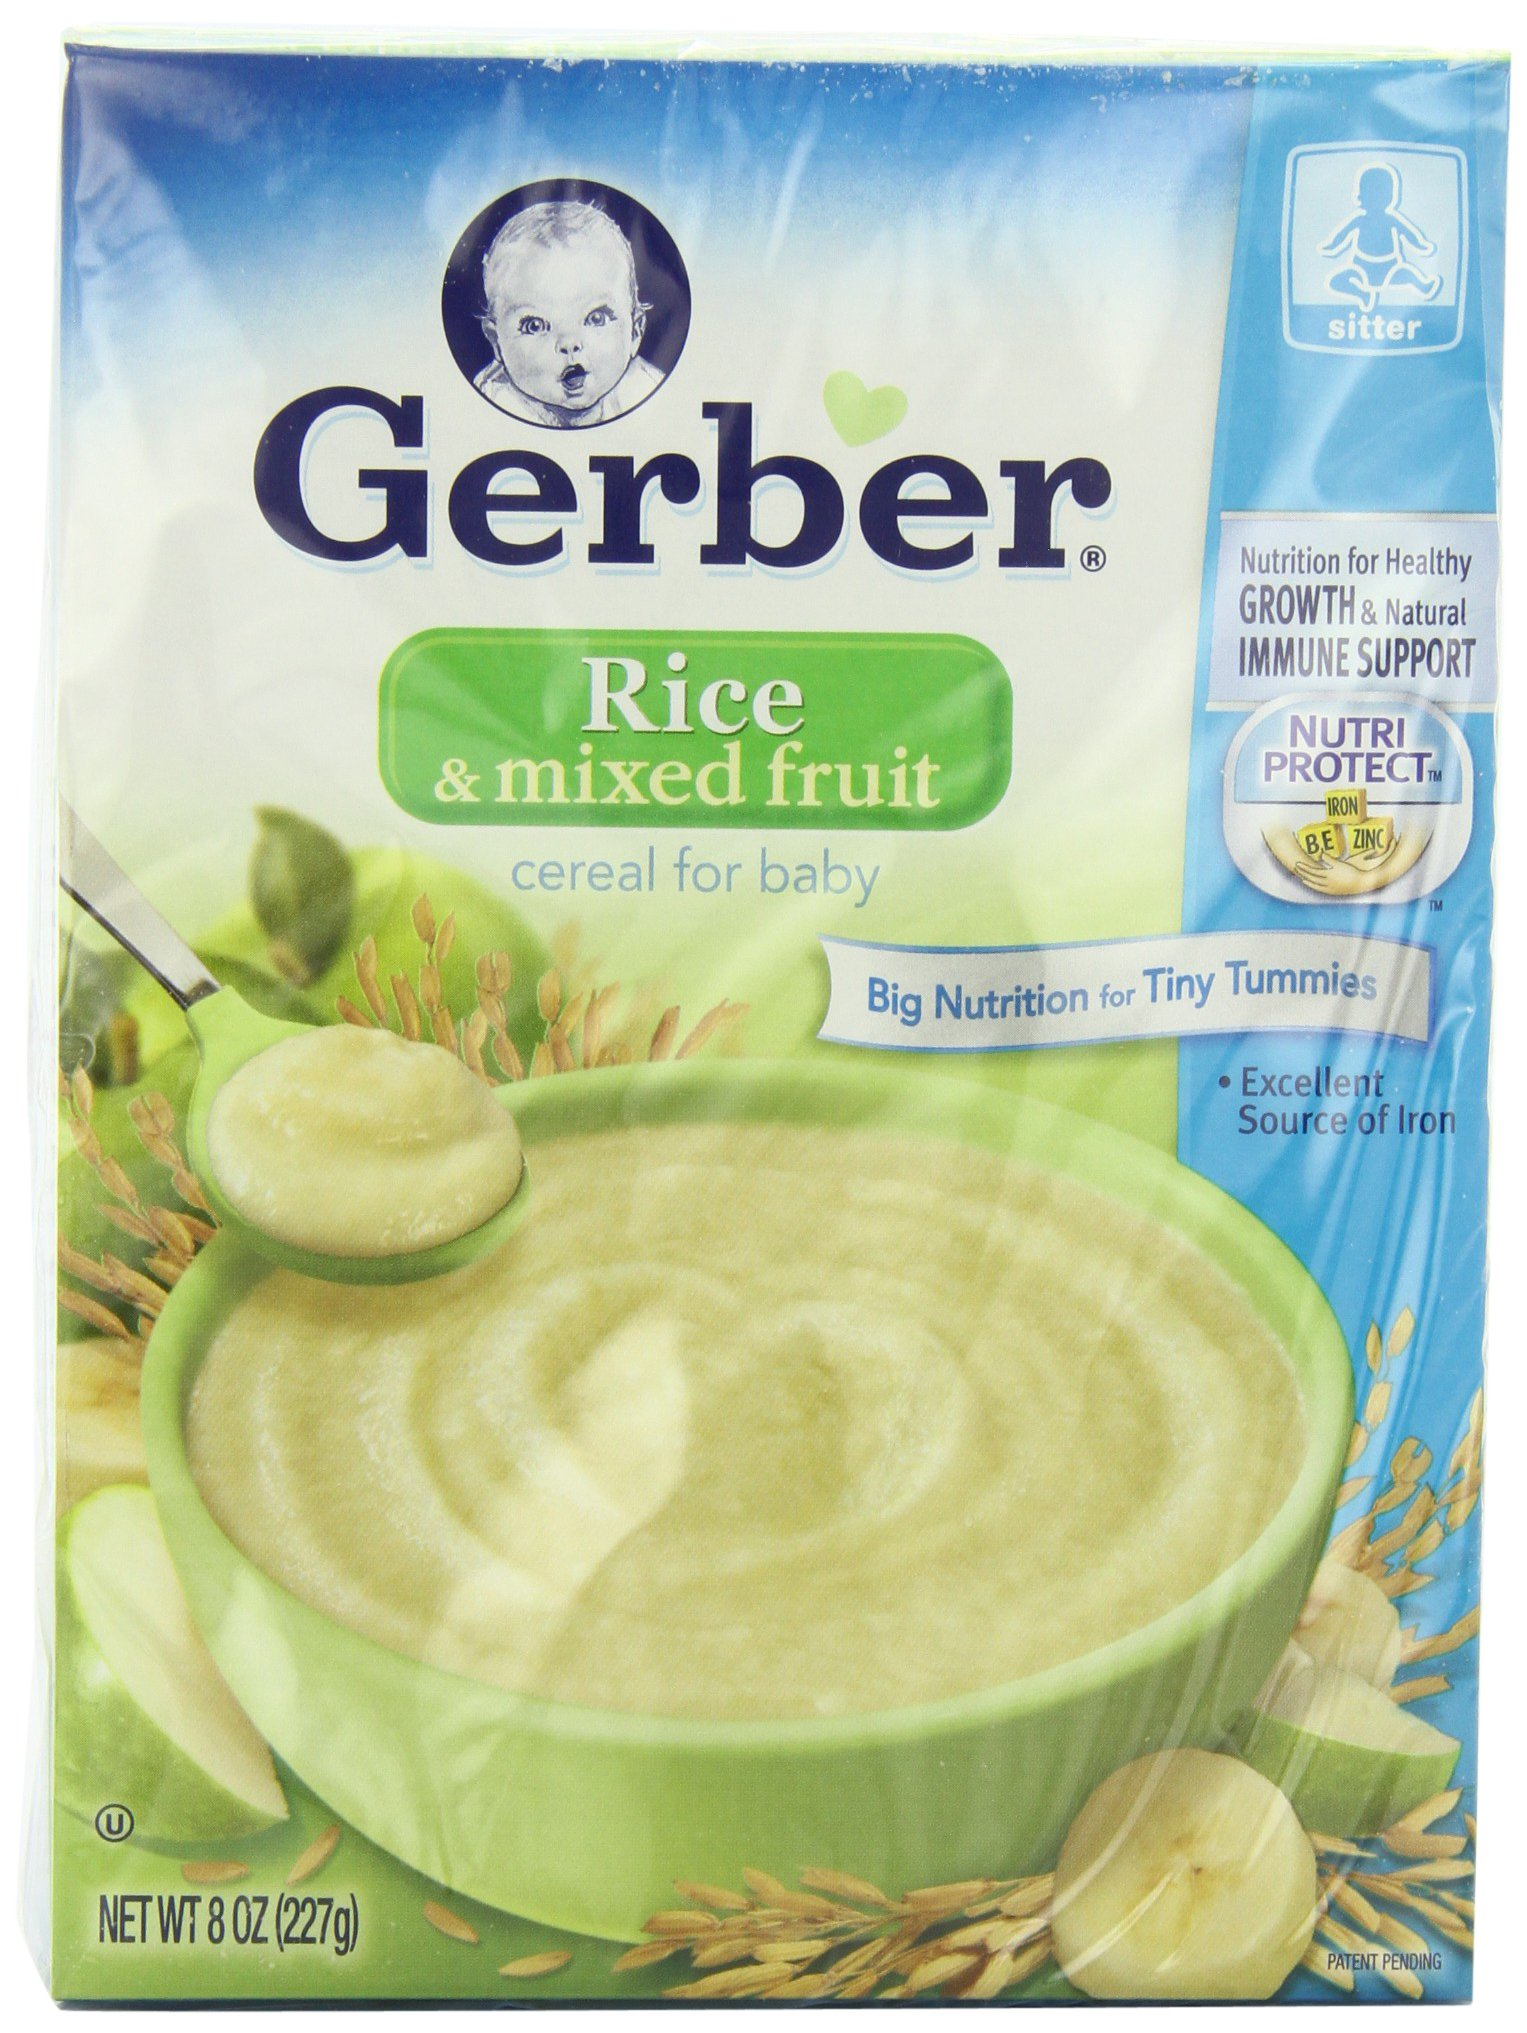 Gerber Cereal, Rice & Mixed Fruit with NutriProtect, 8-Ounce Boxes (Pack of 6)